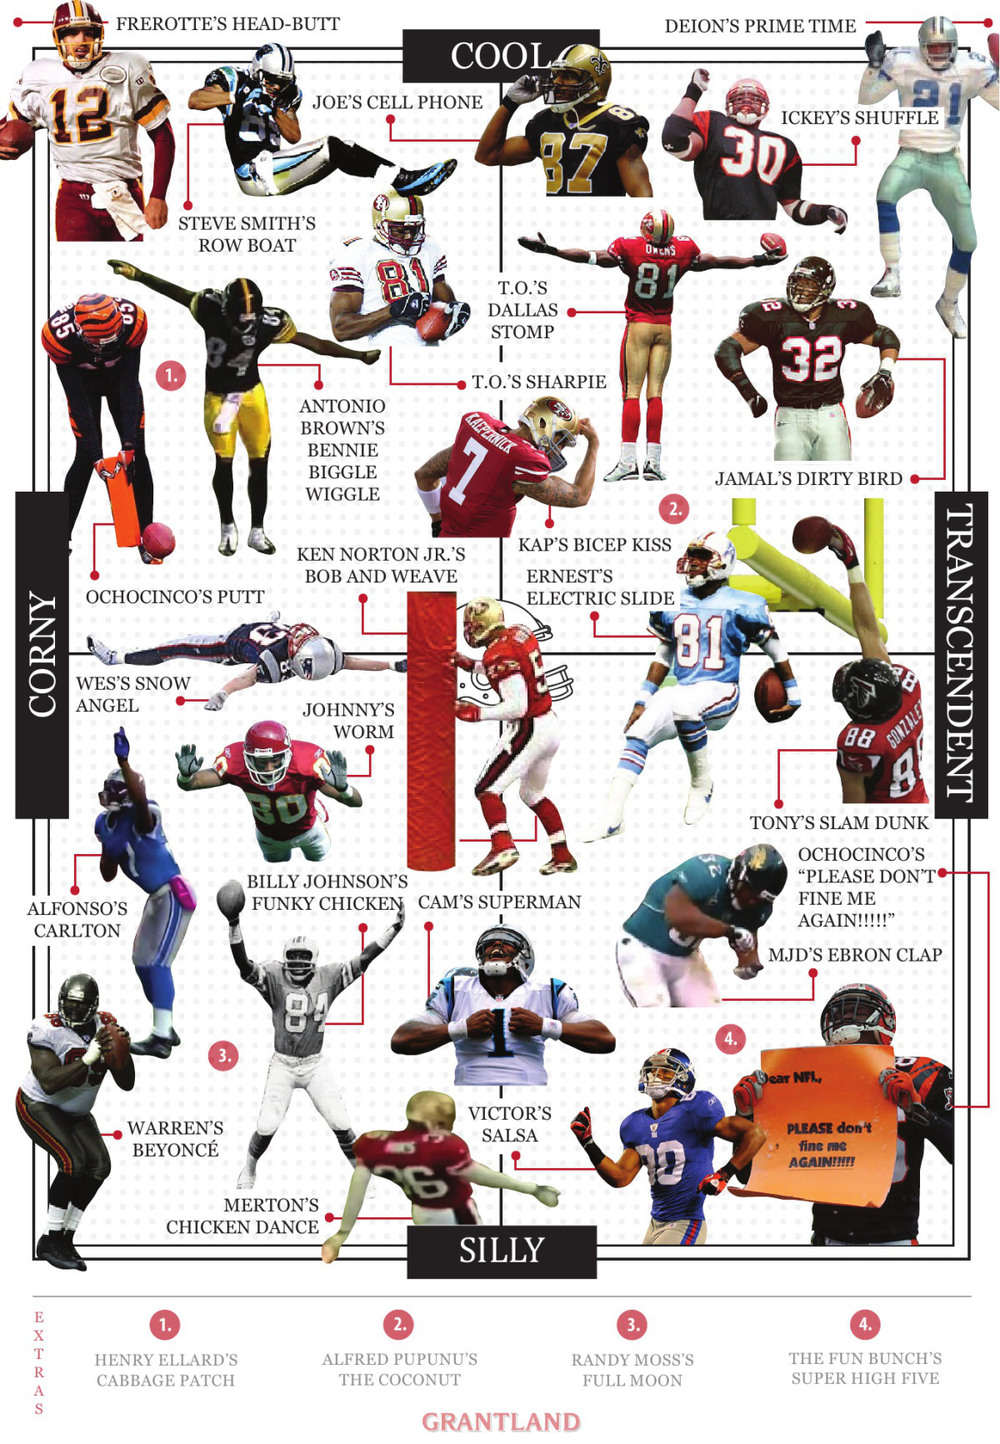 Grantland's  Touchdown Celebration Matrix